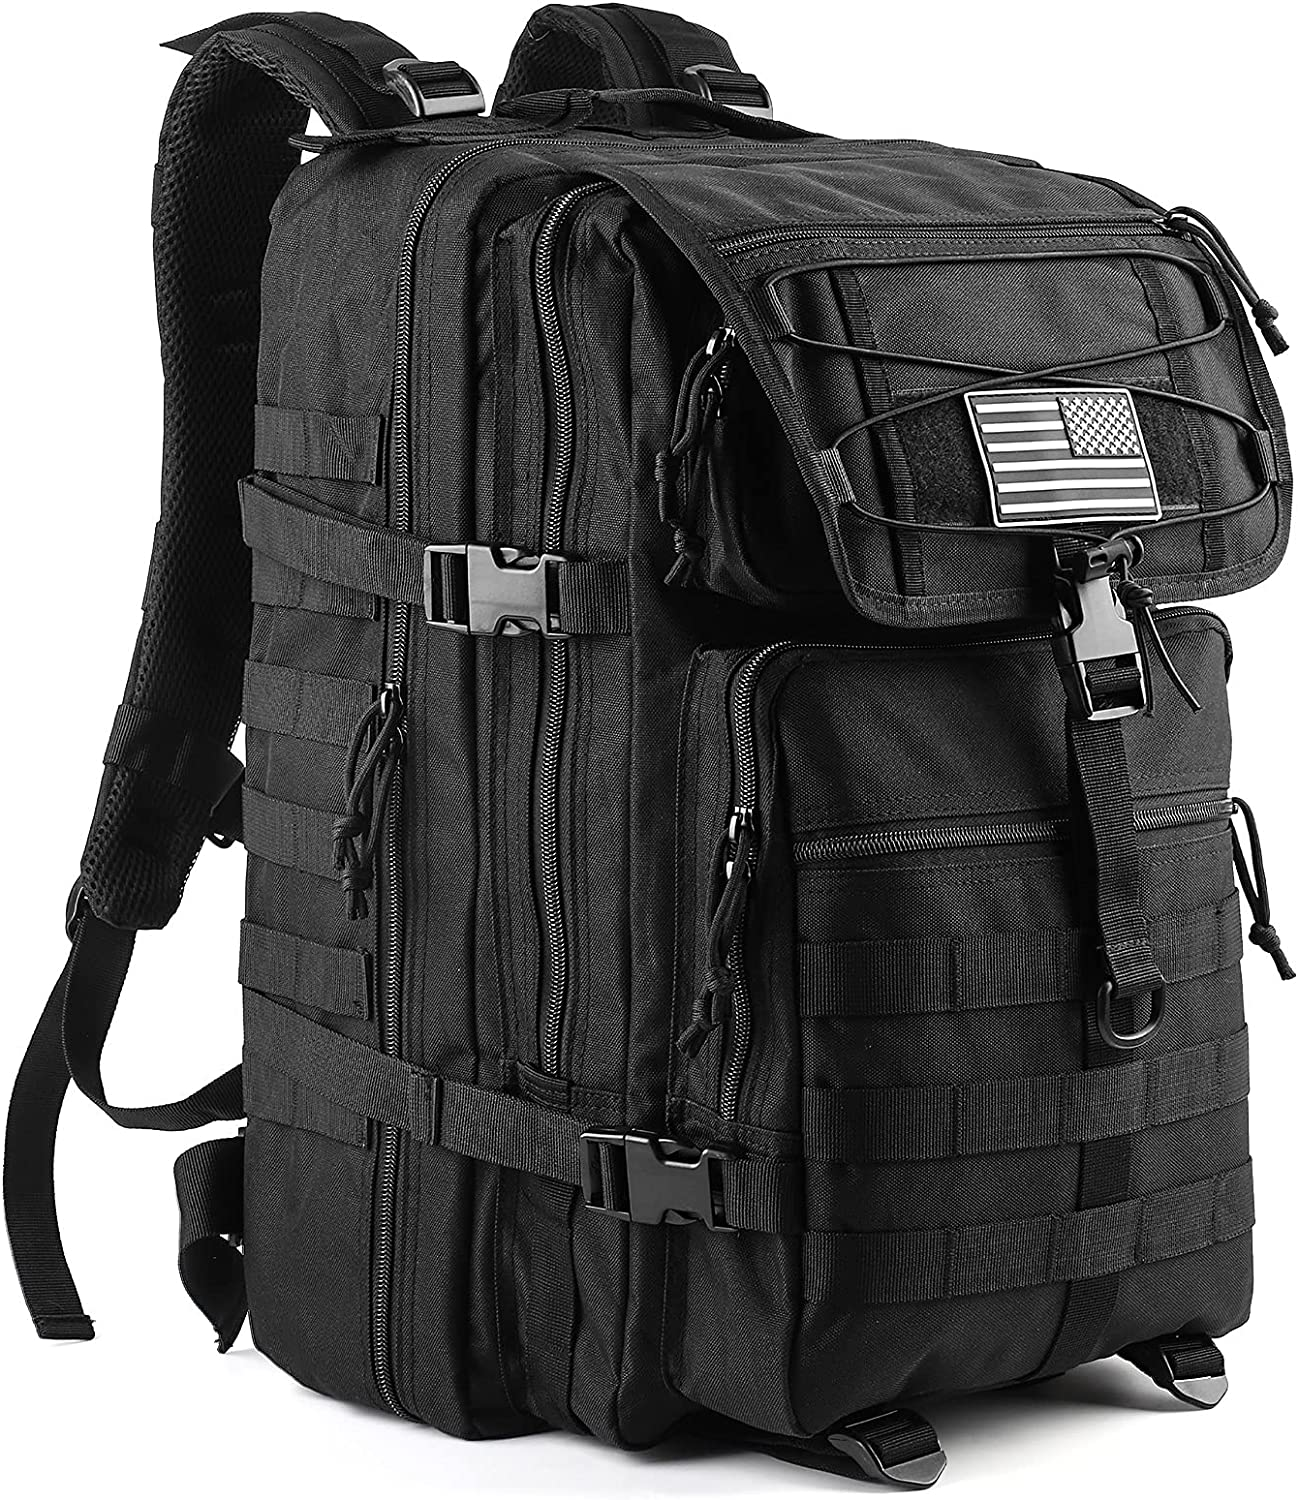 45L Molle Army Military Tactical Backpack Cash special price P Waterproof - Japan's largest assortment Assault